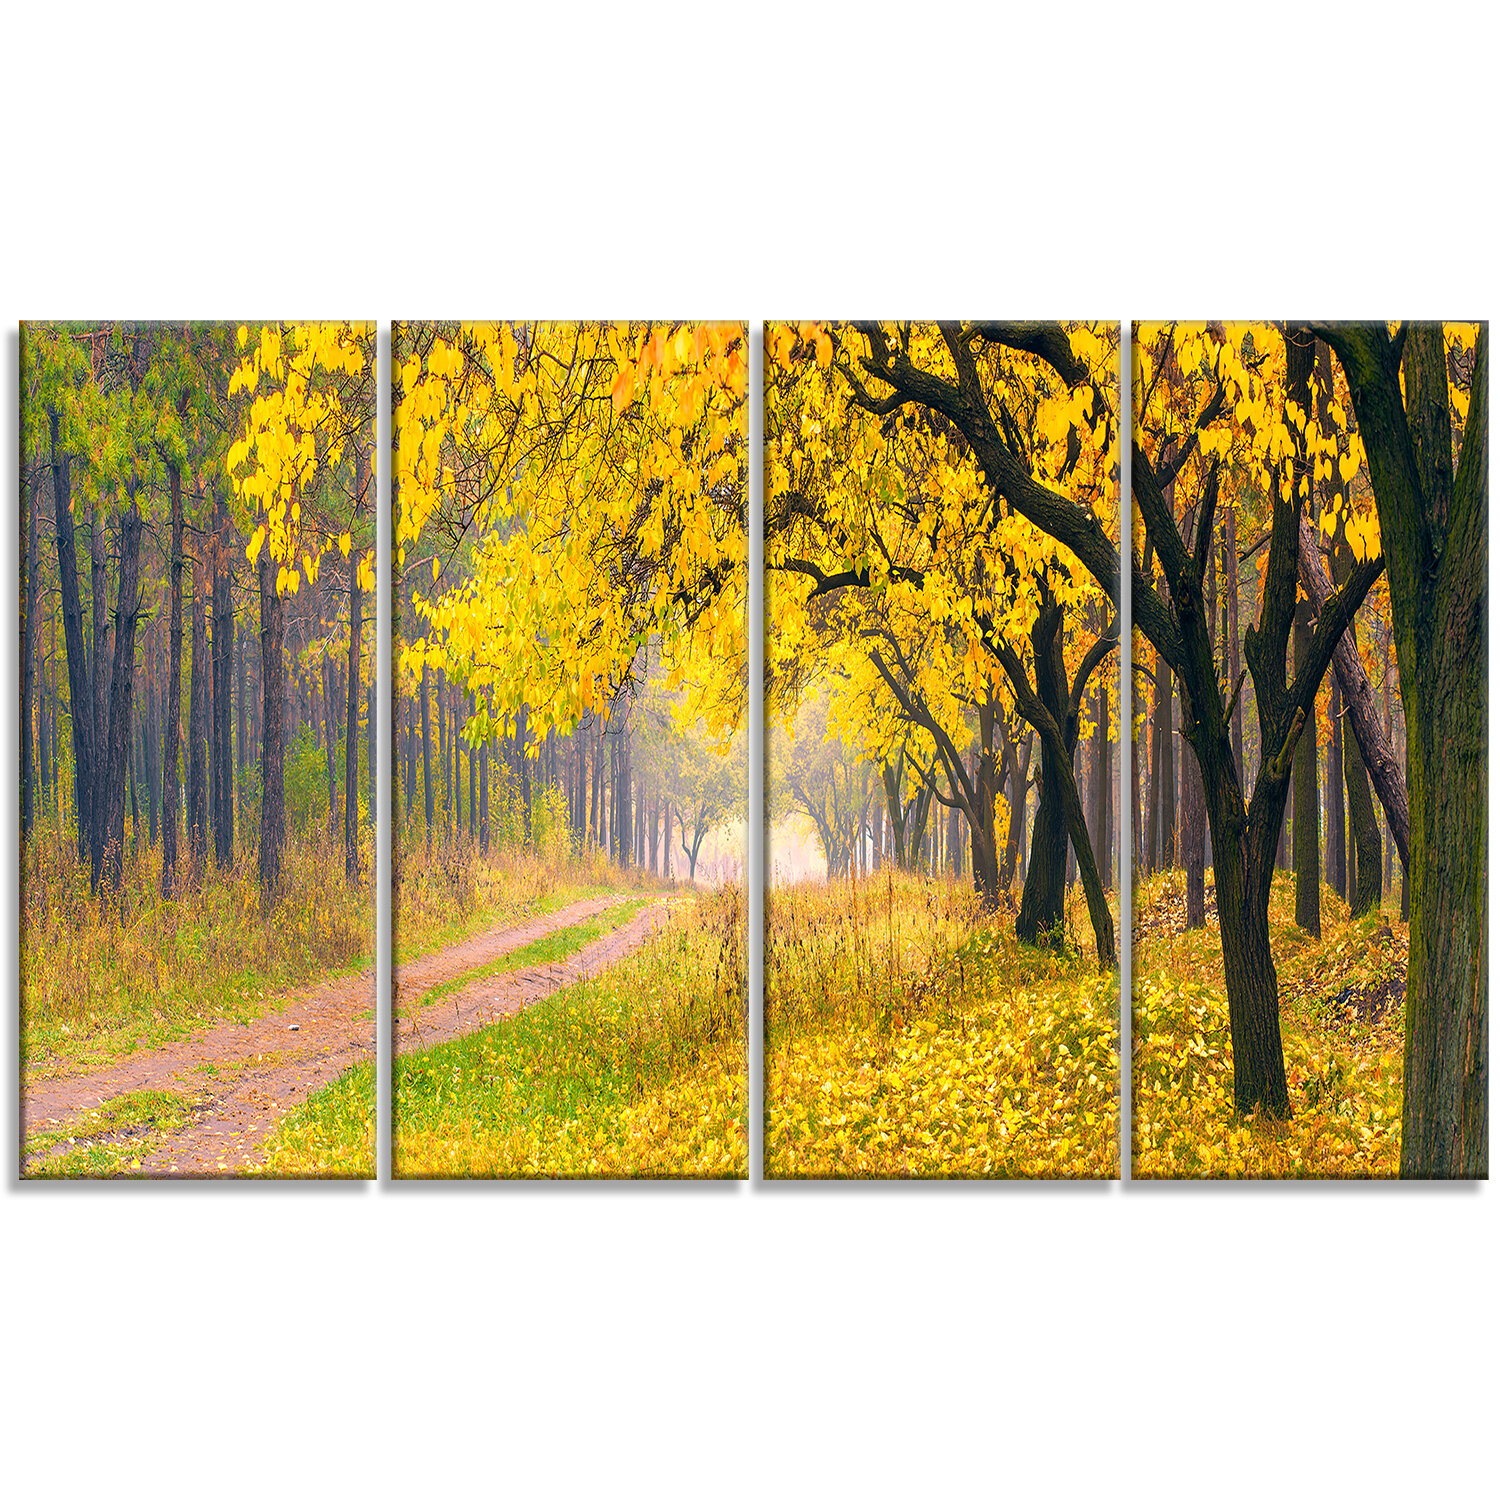 DesignArt \'Bright Yellow Autumn Forest\' 4 Piece Wall Art on Wrapped ...